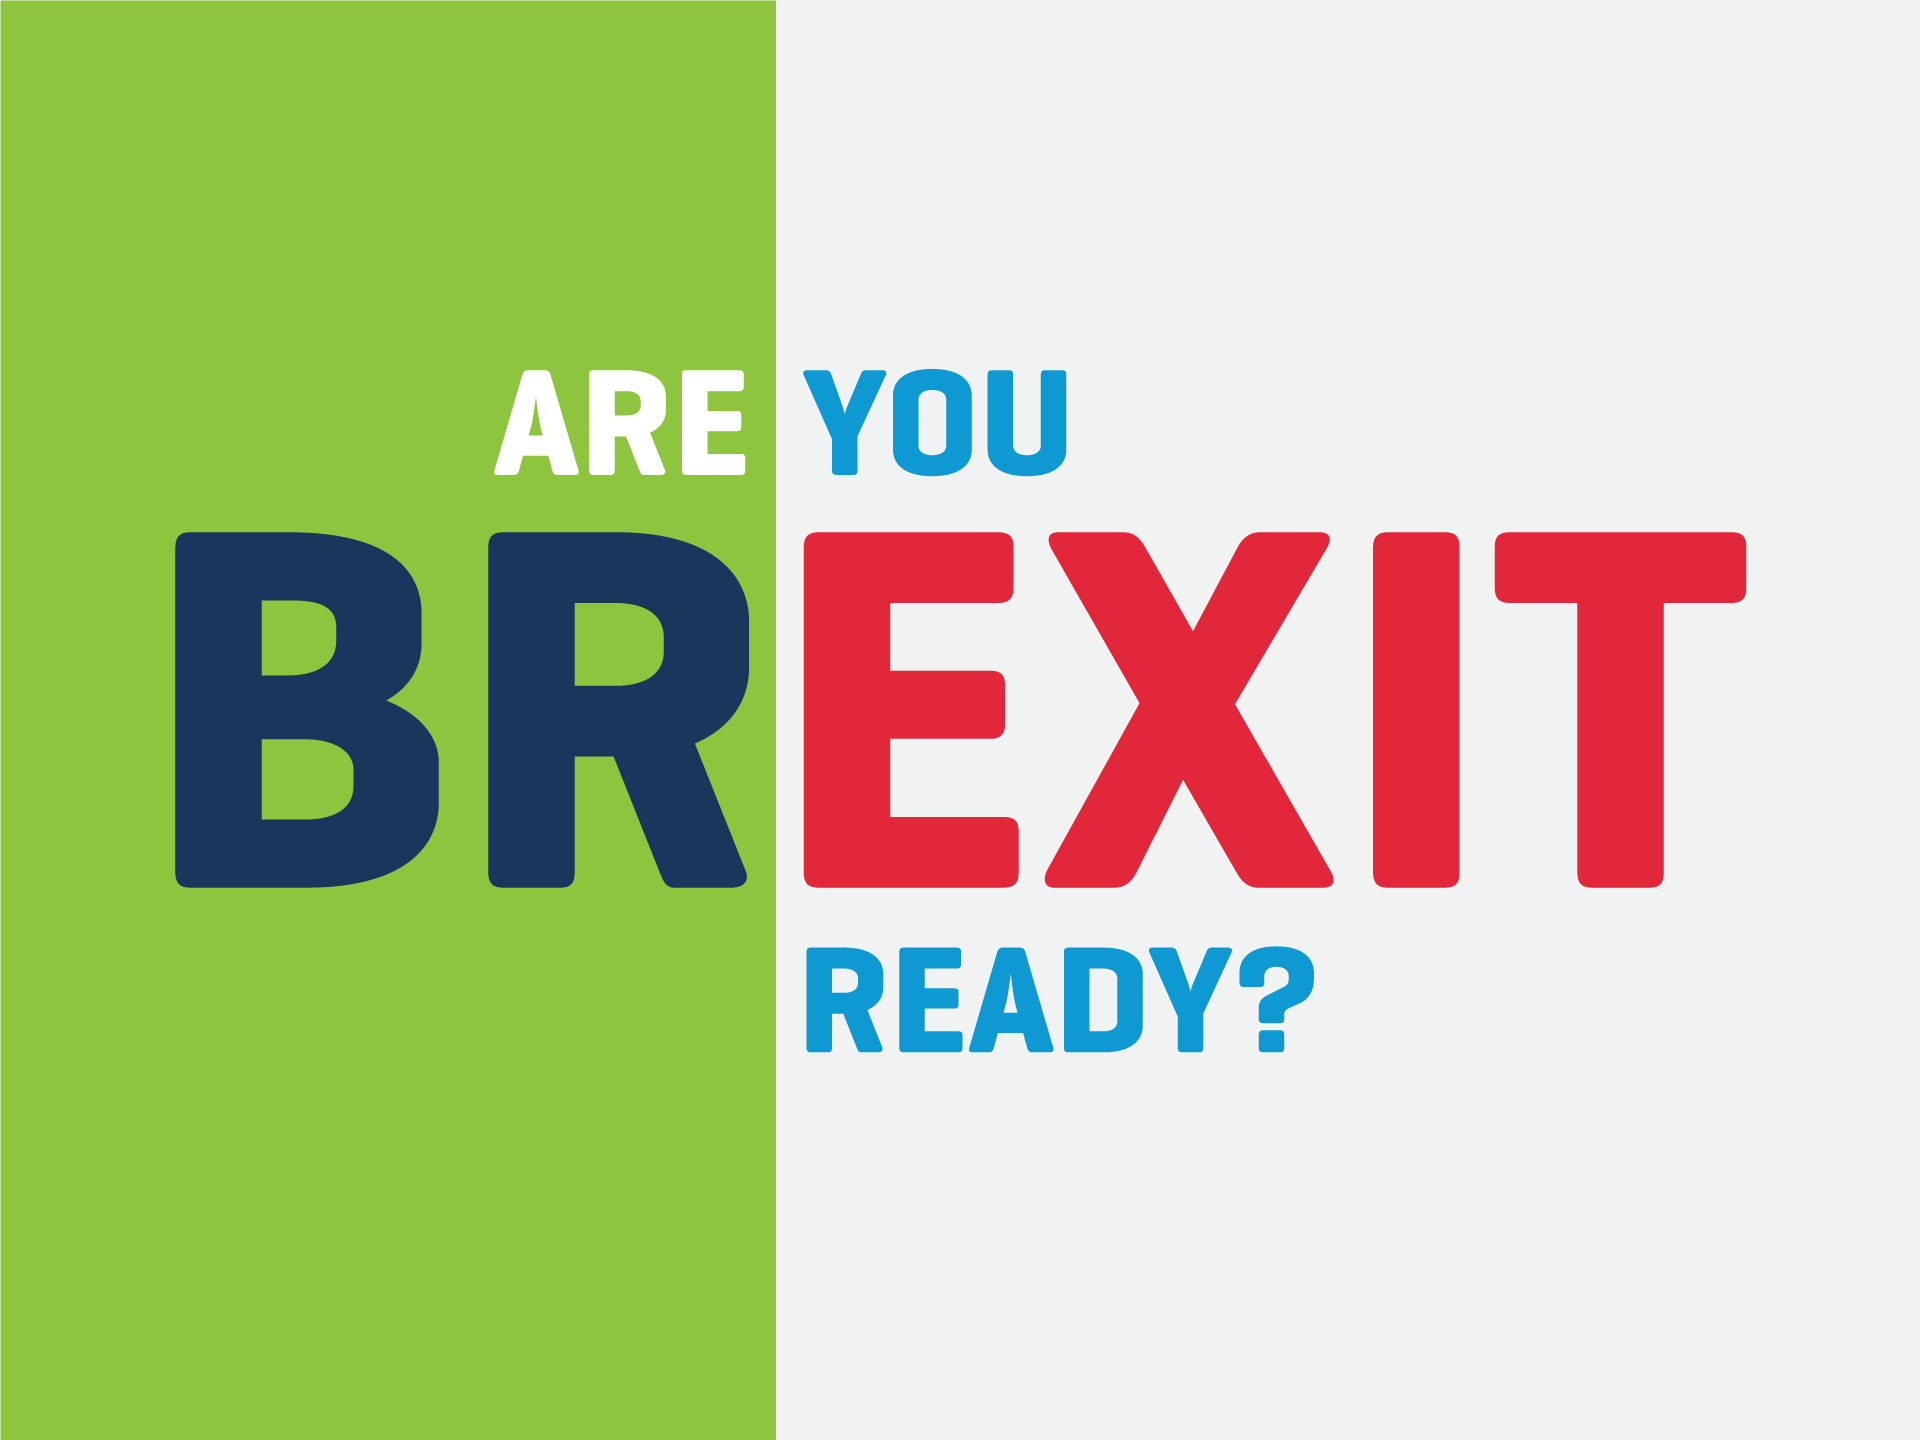 Are you BREXIT Ready?